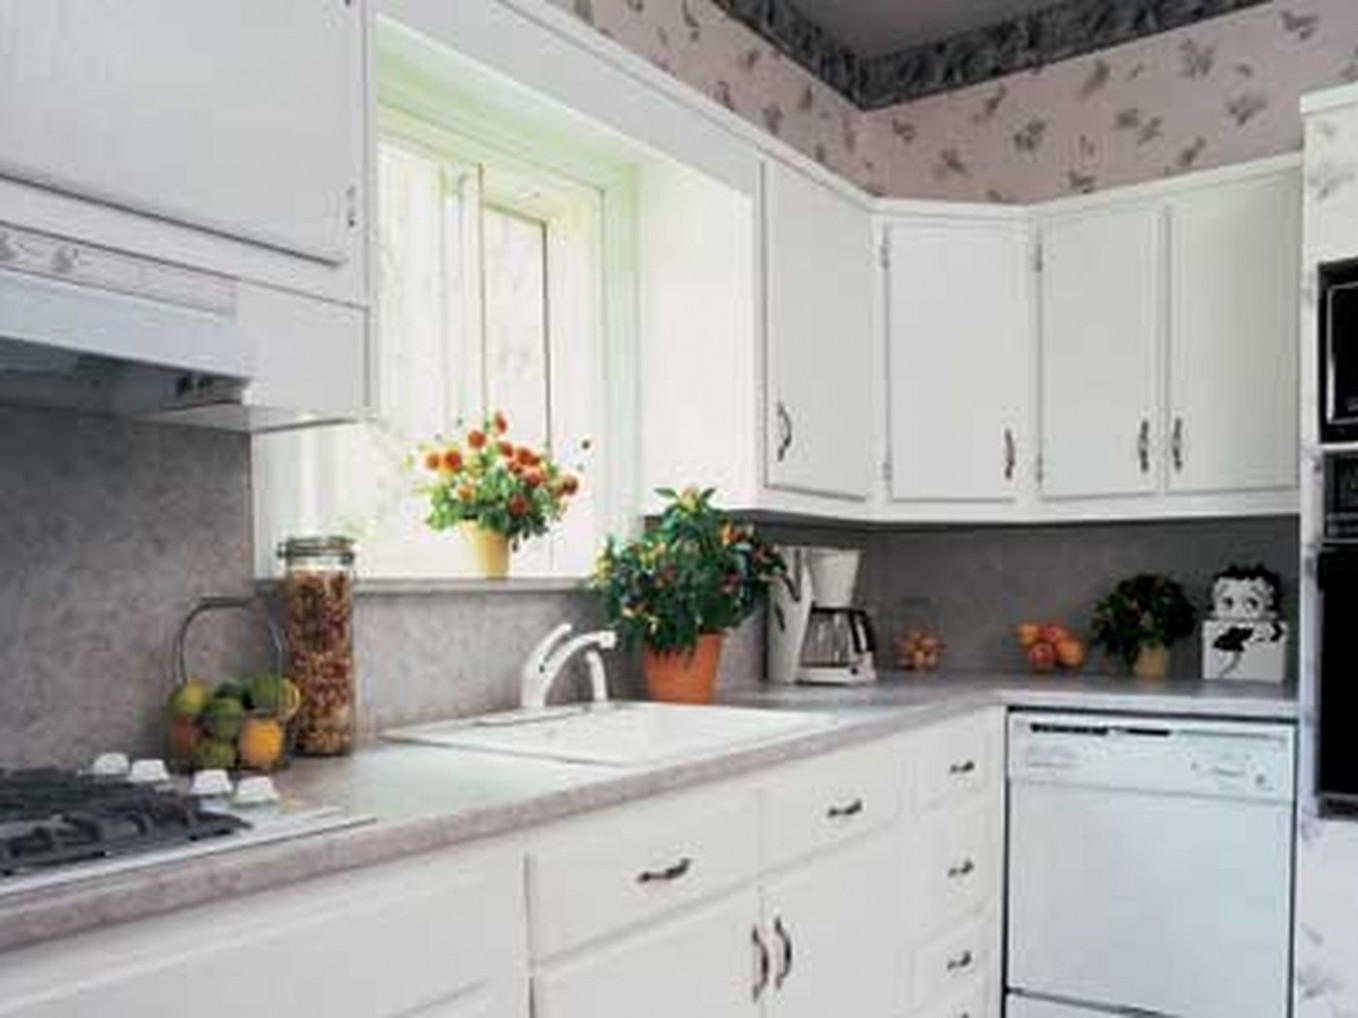 Reface or Replace Cabinets? - This Old House - How To Reface Kitchen Cabinets With Paint